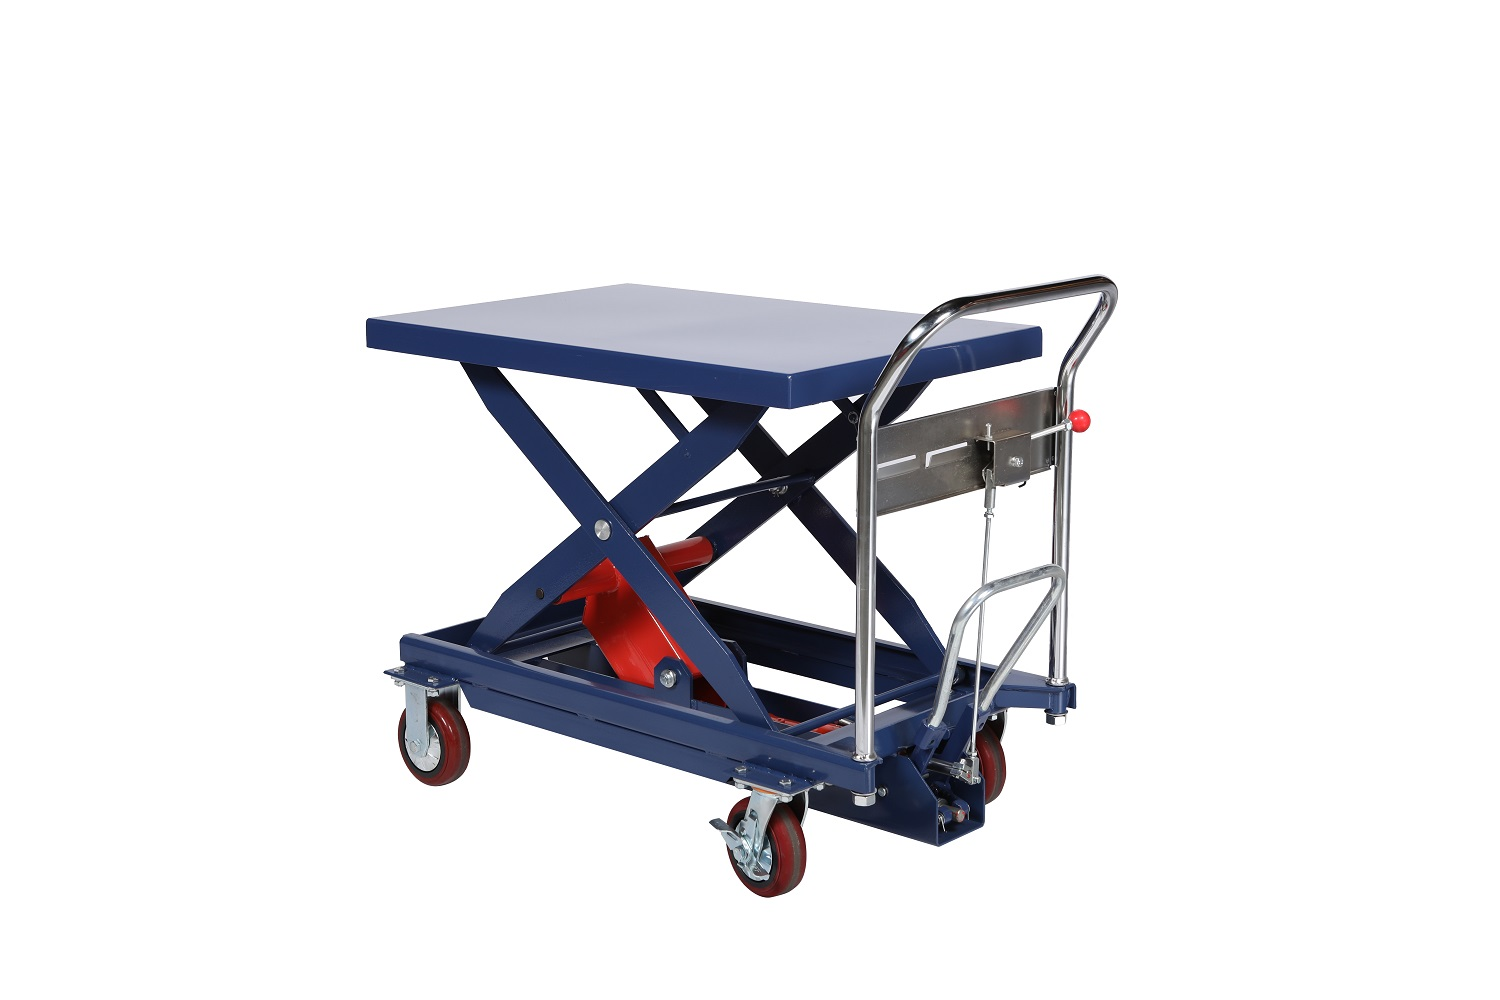 500KG LHT construction platform lift mobile equipment